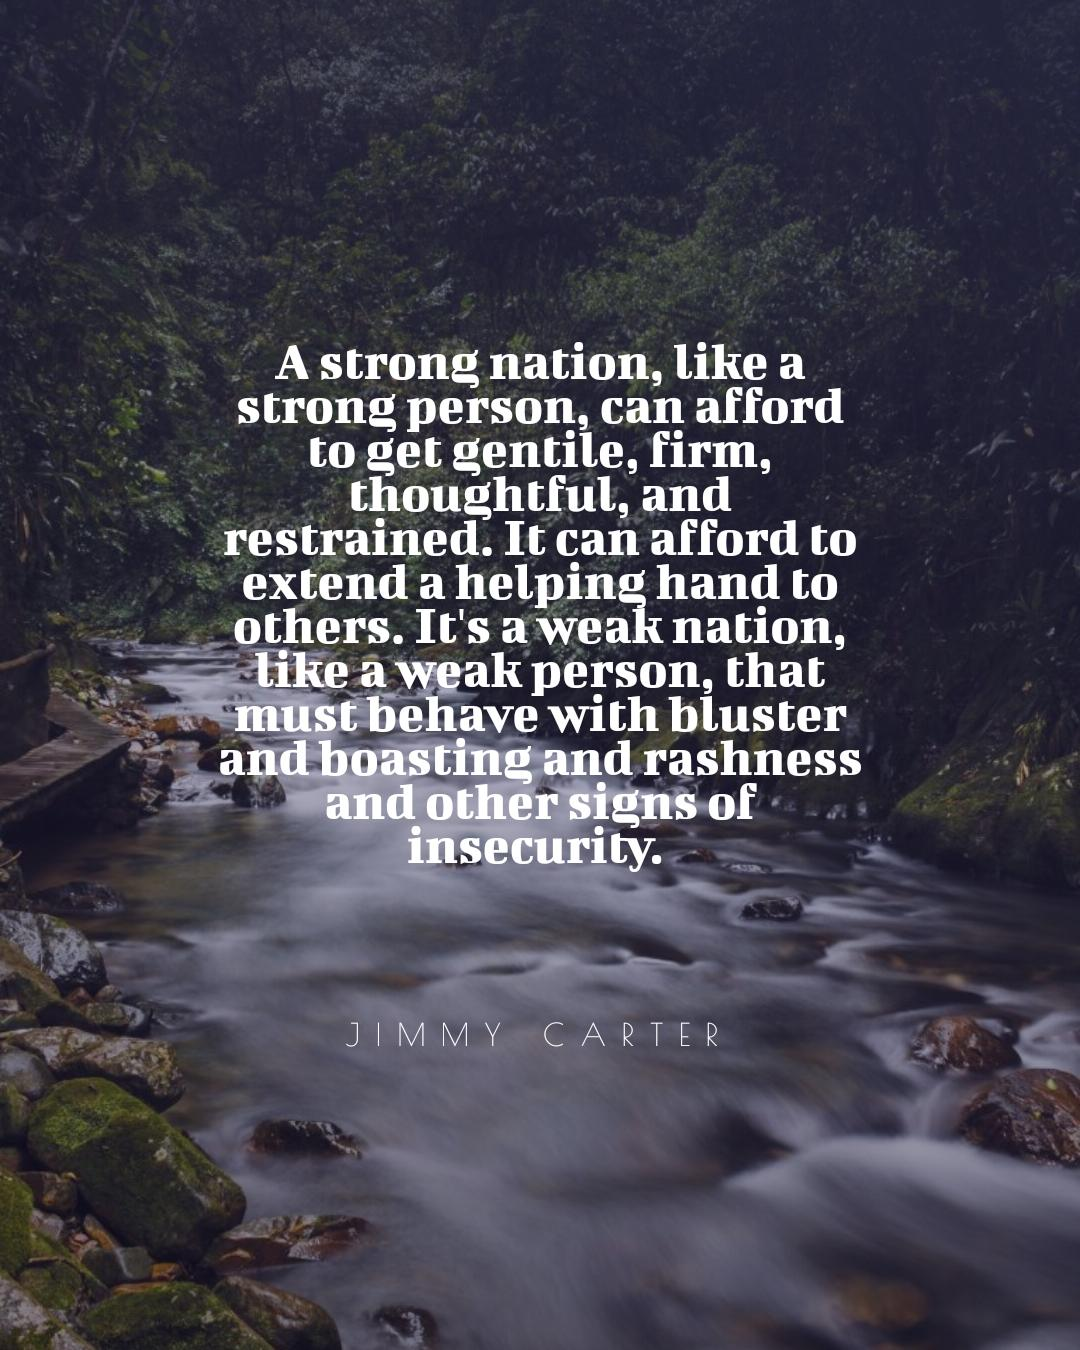 """A strong nation, like a strong person . . ."" -Jimmy Carter [1080×1350]"